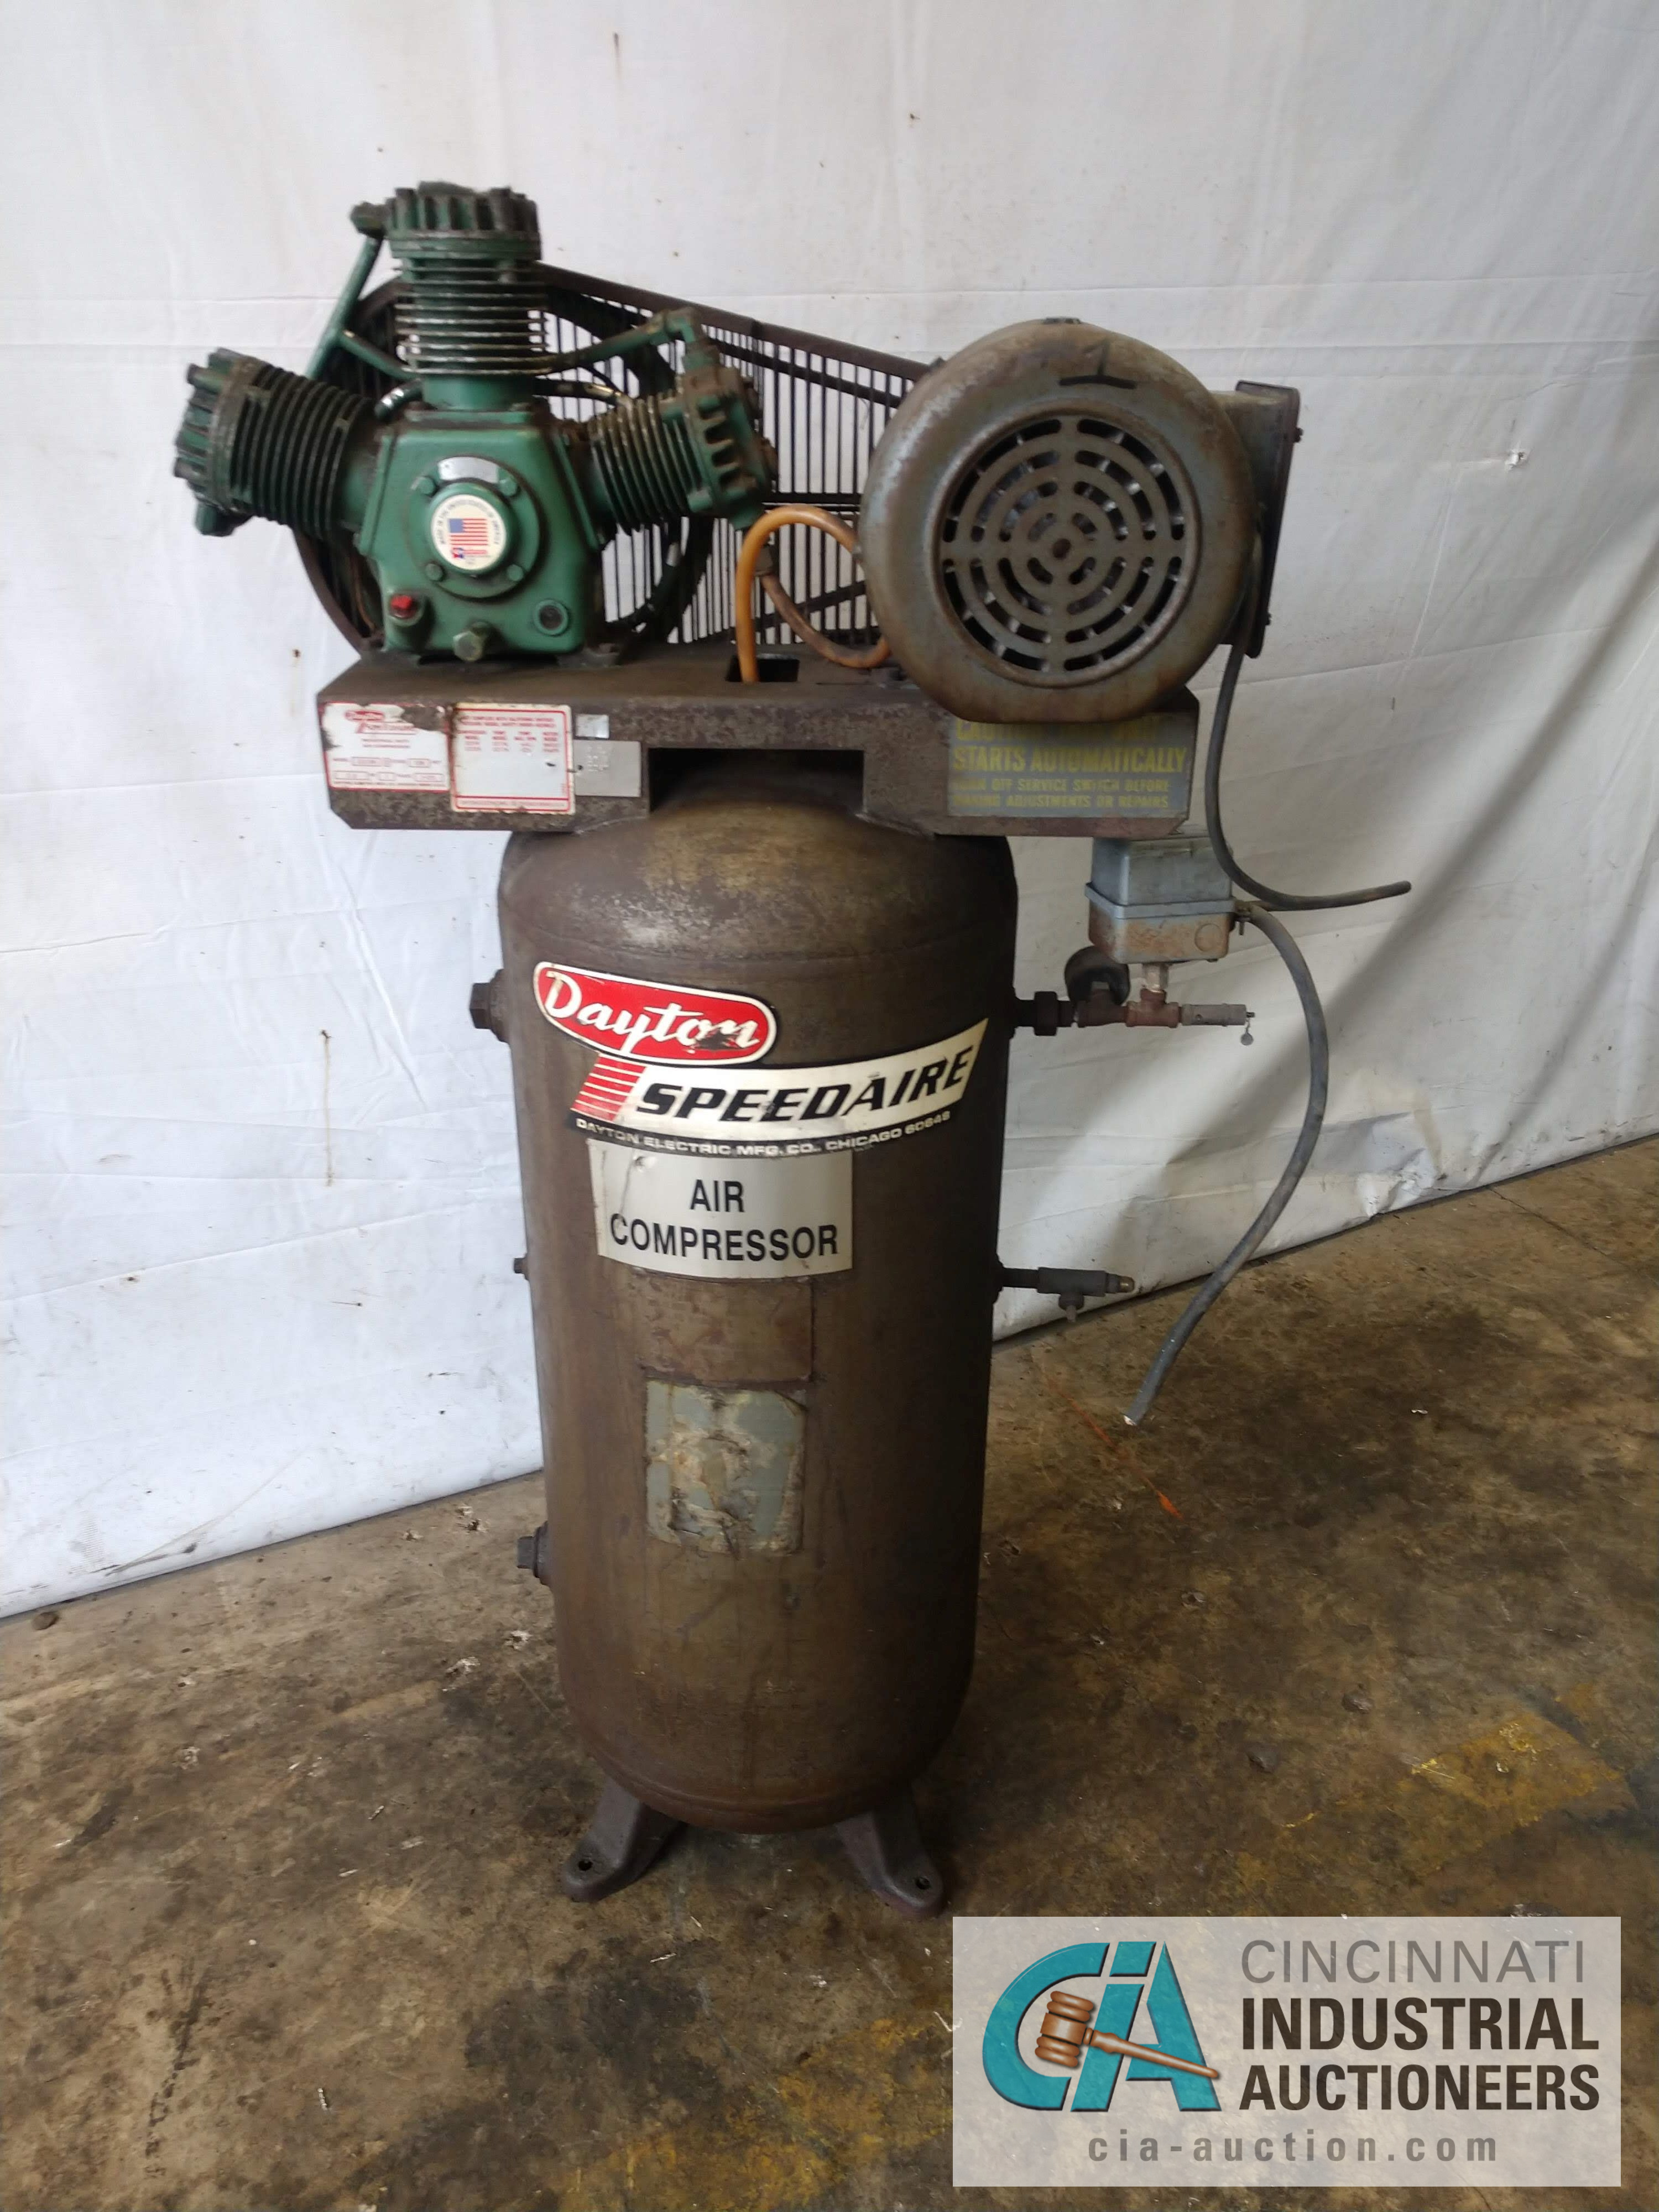 2 HP SPEEDAIRE MODEL 3Z219B AIR COMPRESSOR - $20.00 Rigging Fee Due to Onsite Rigger - Located in